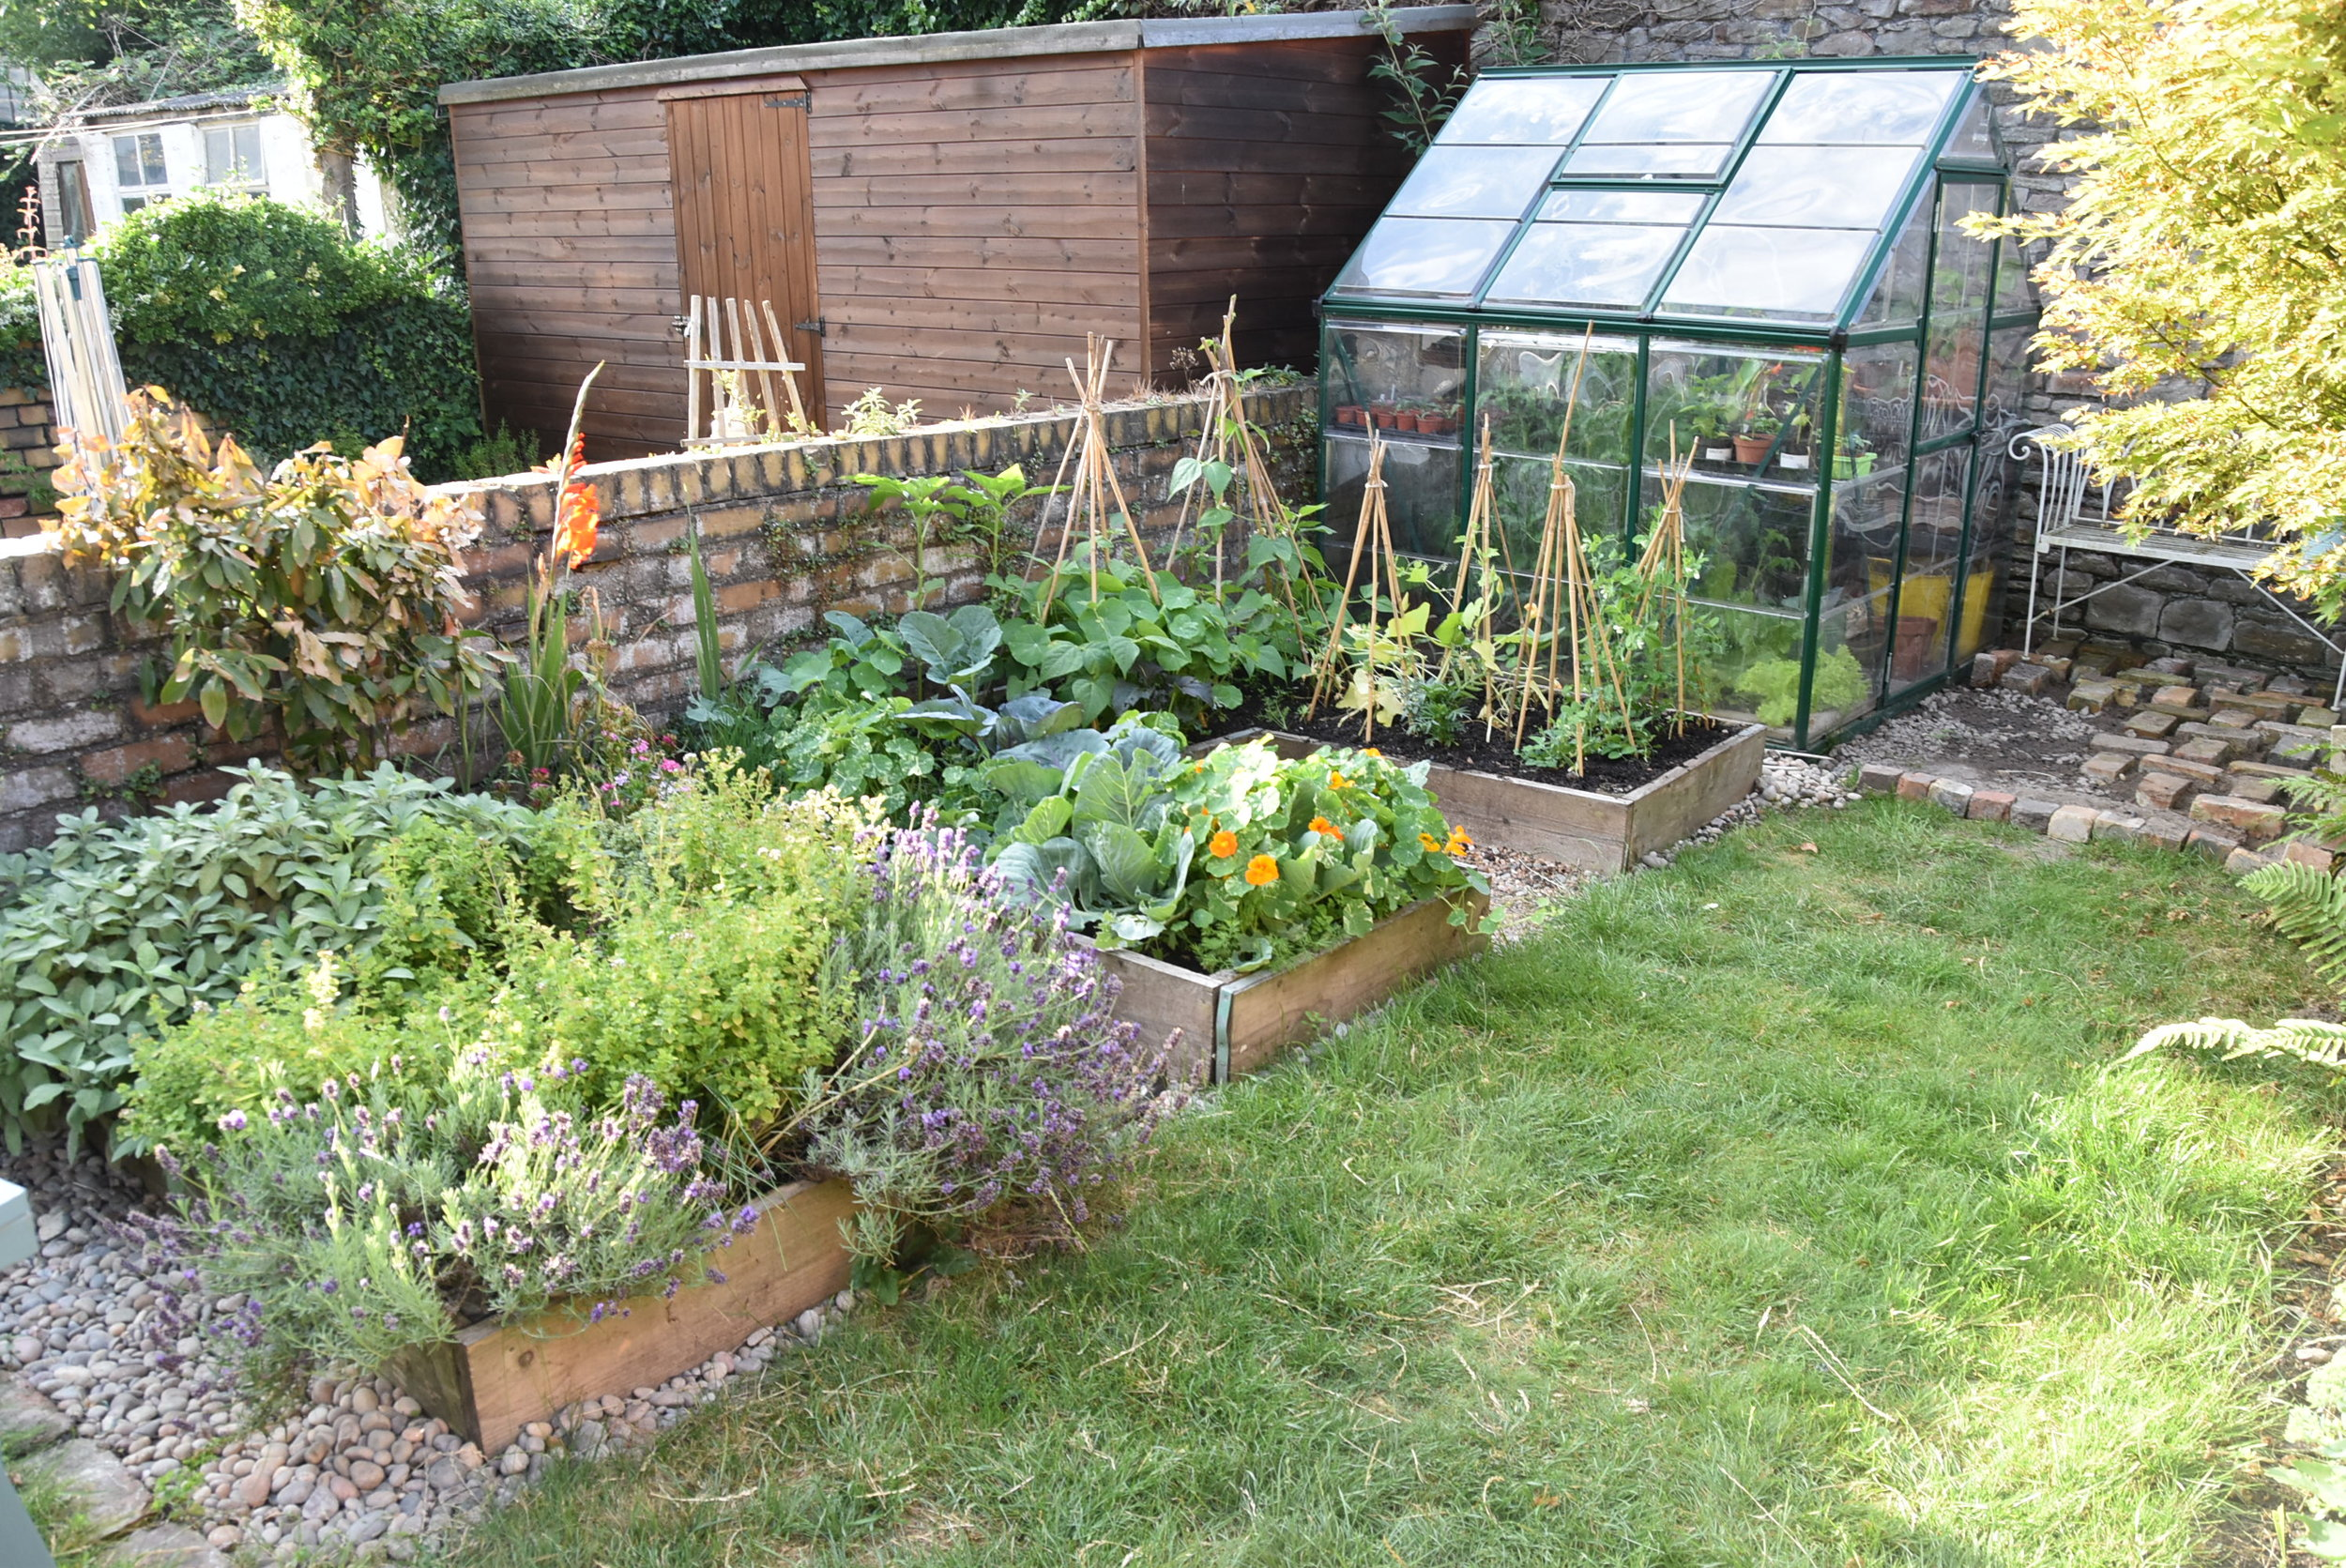 Our urban garden - early summer